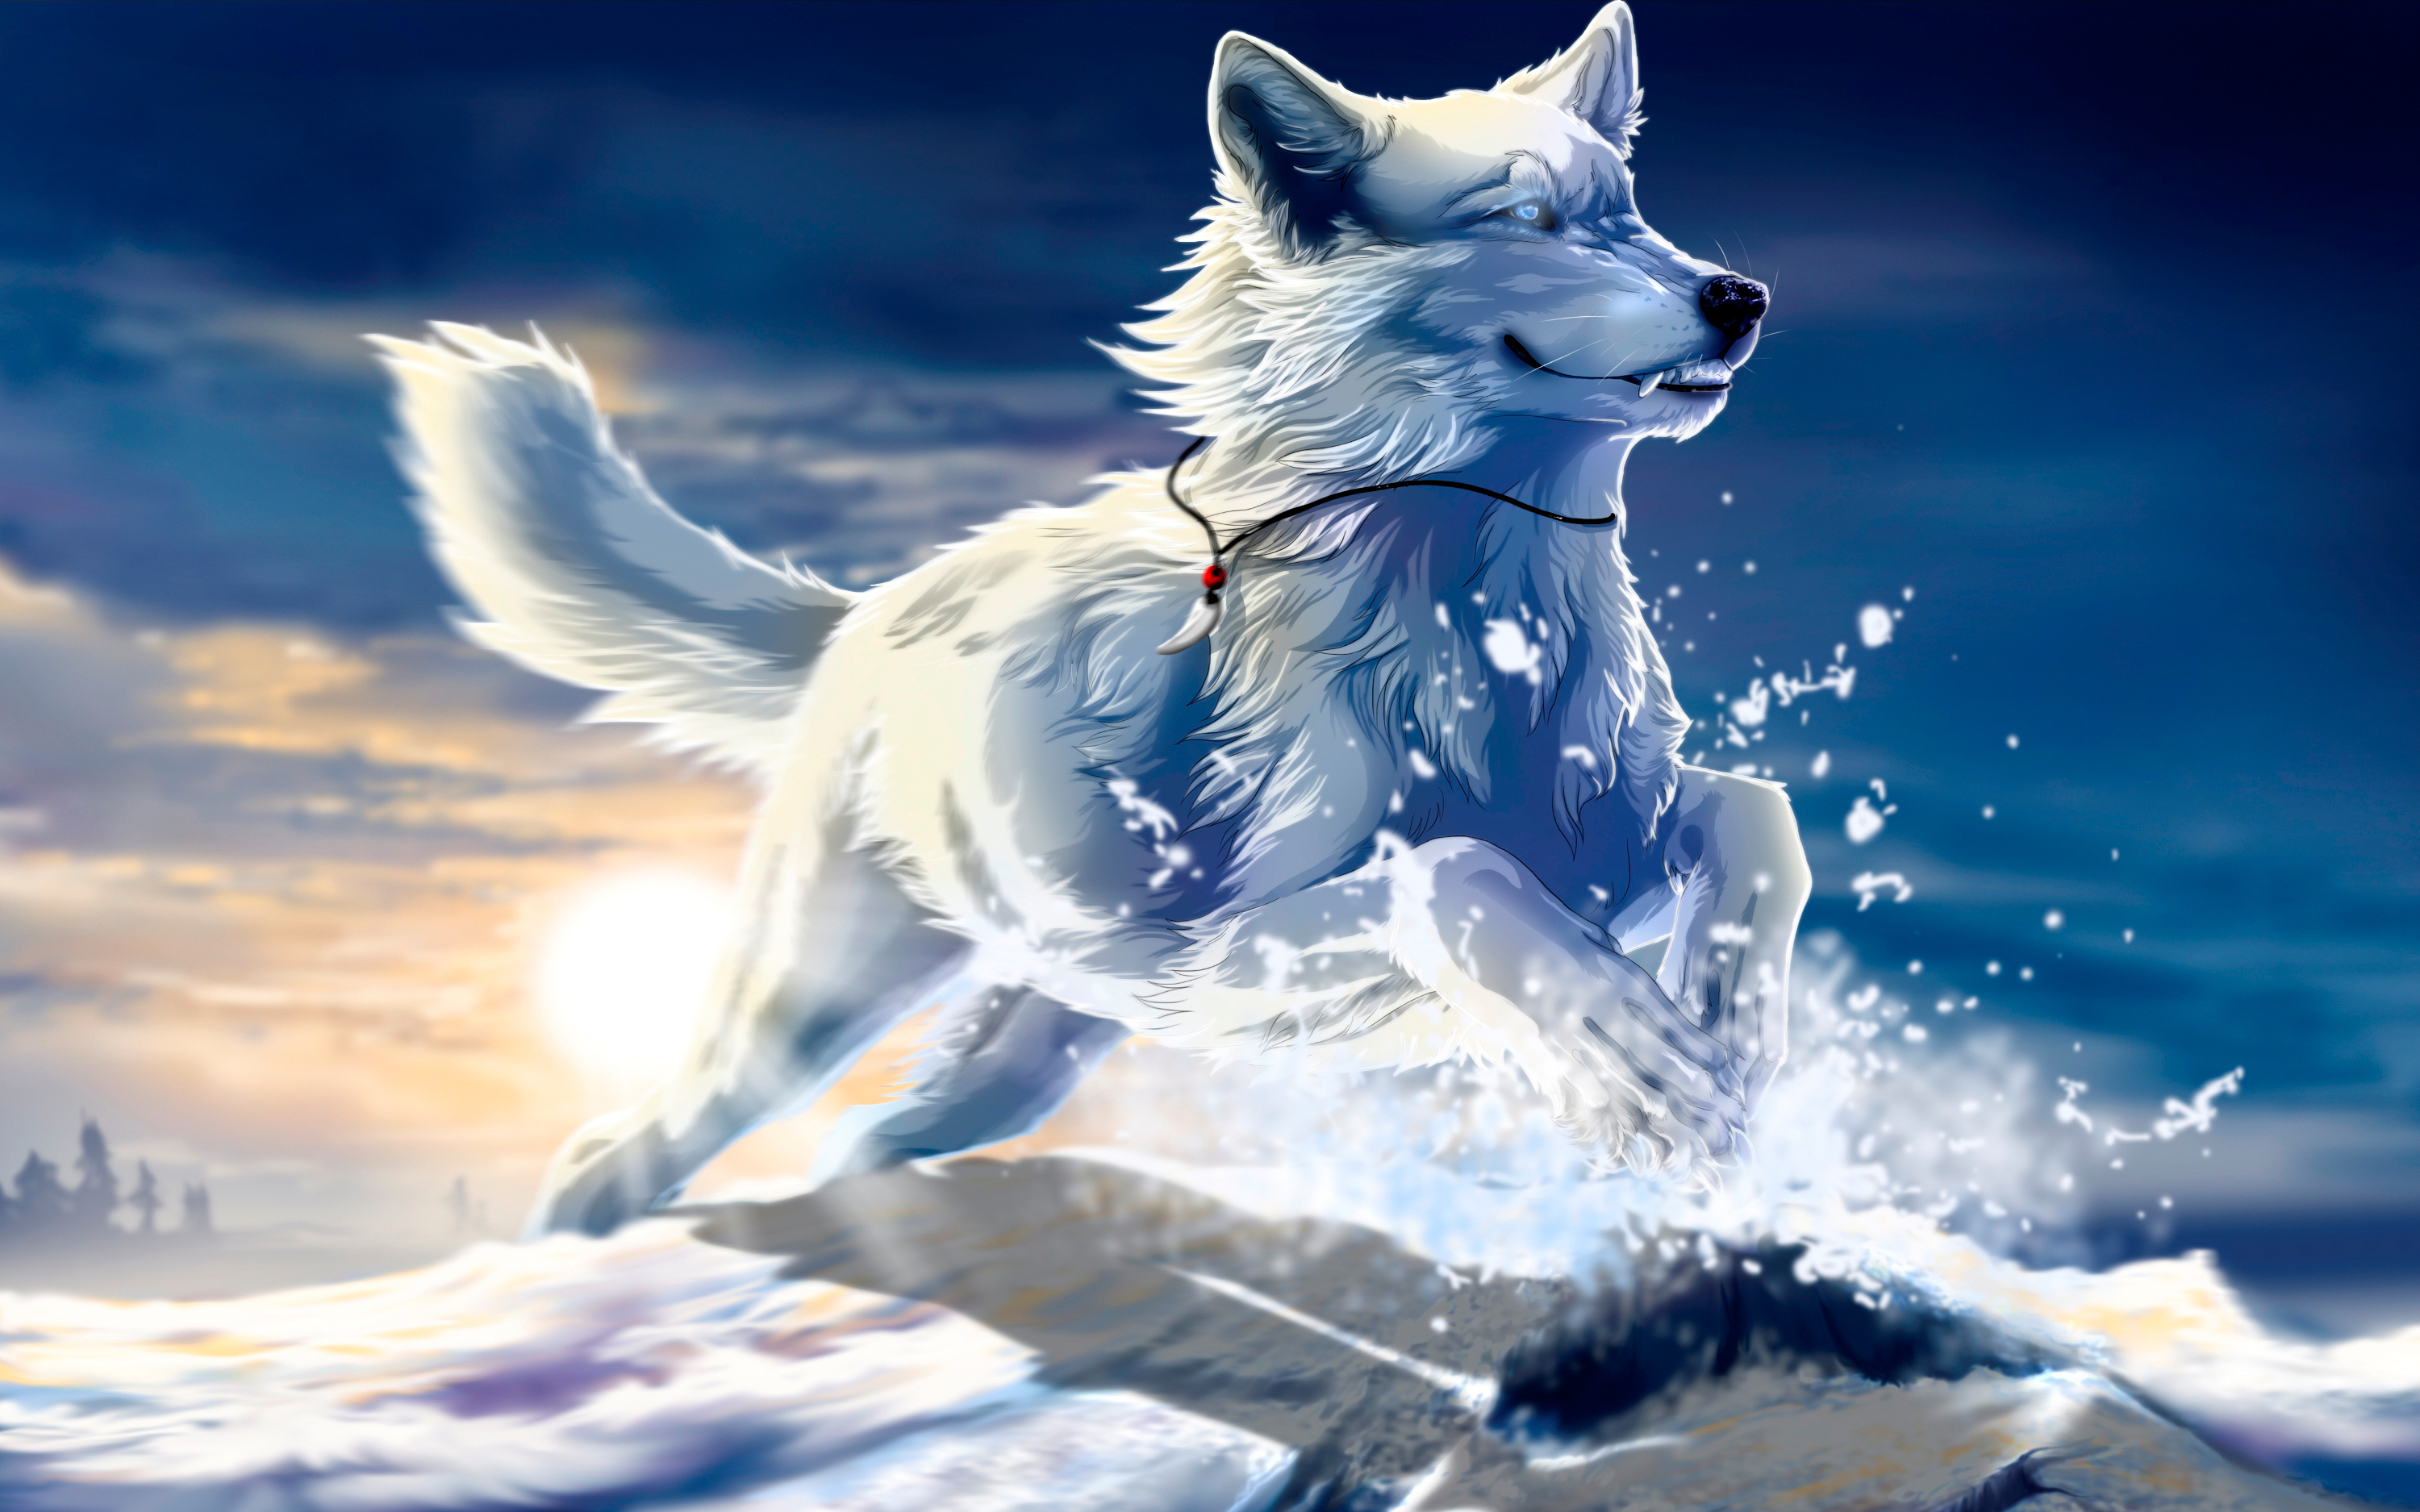 Cool Anime Wolf Wallpapers - WallpaperSafari